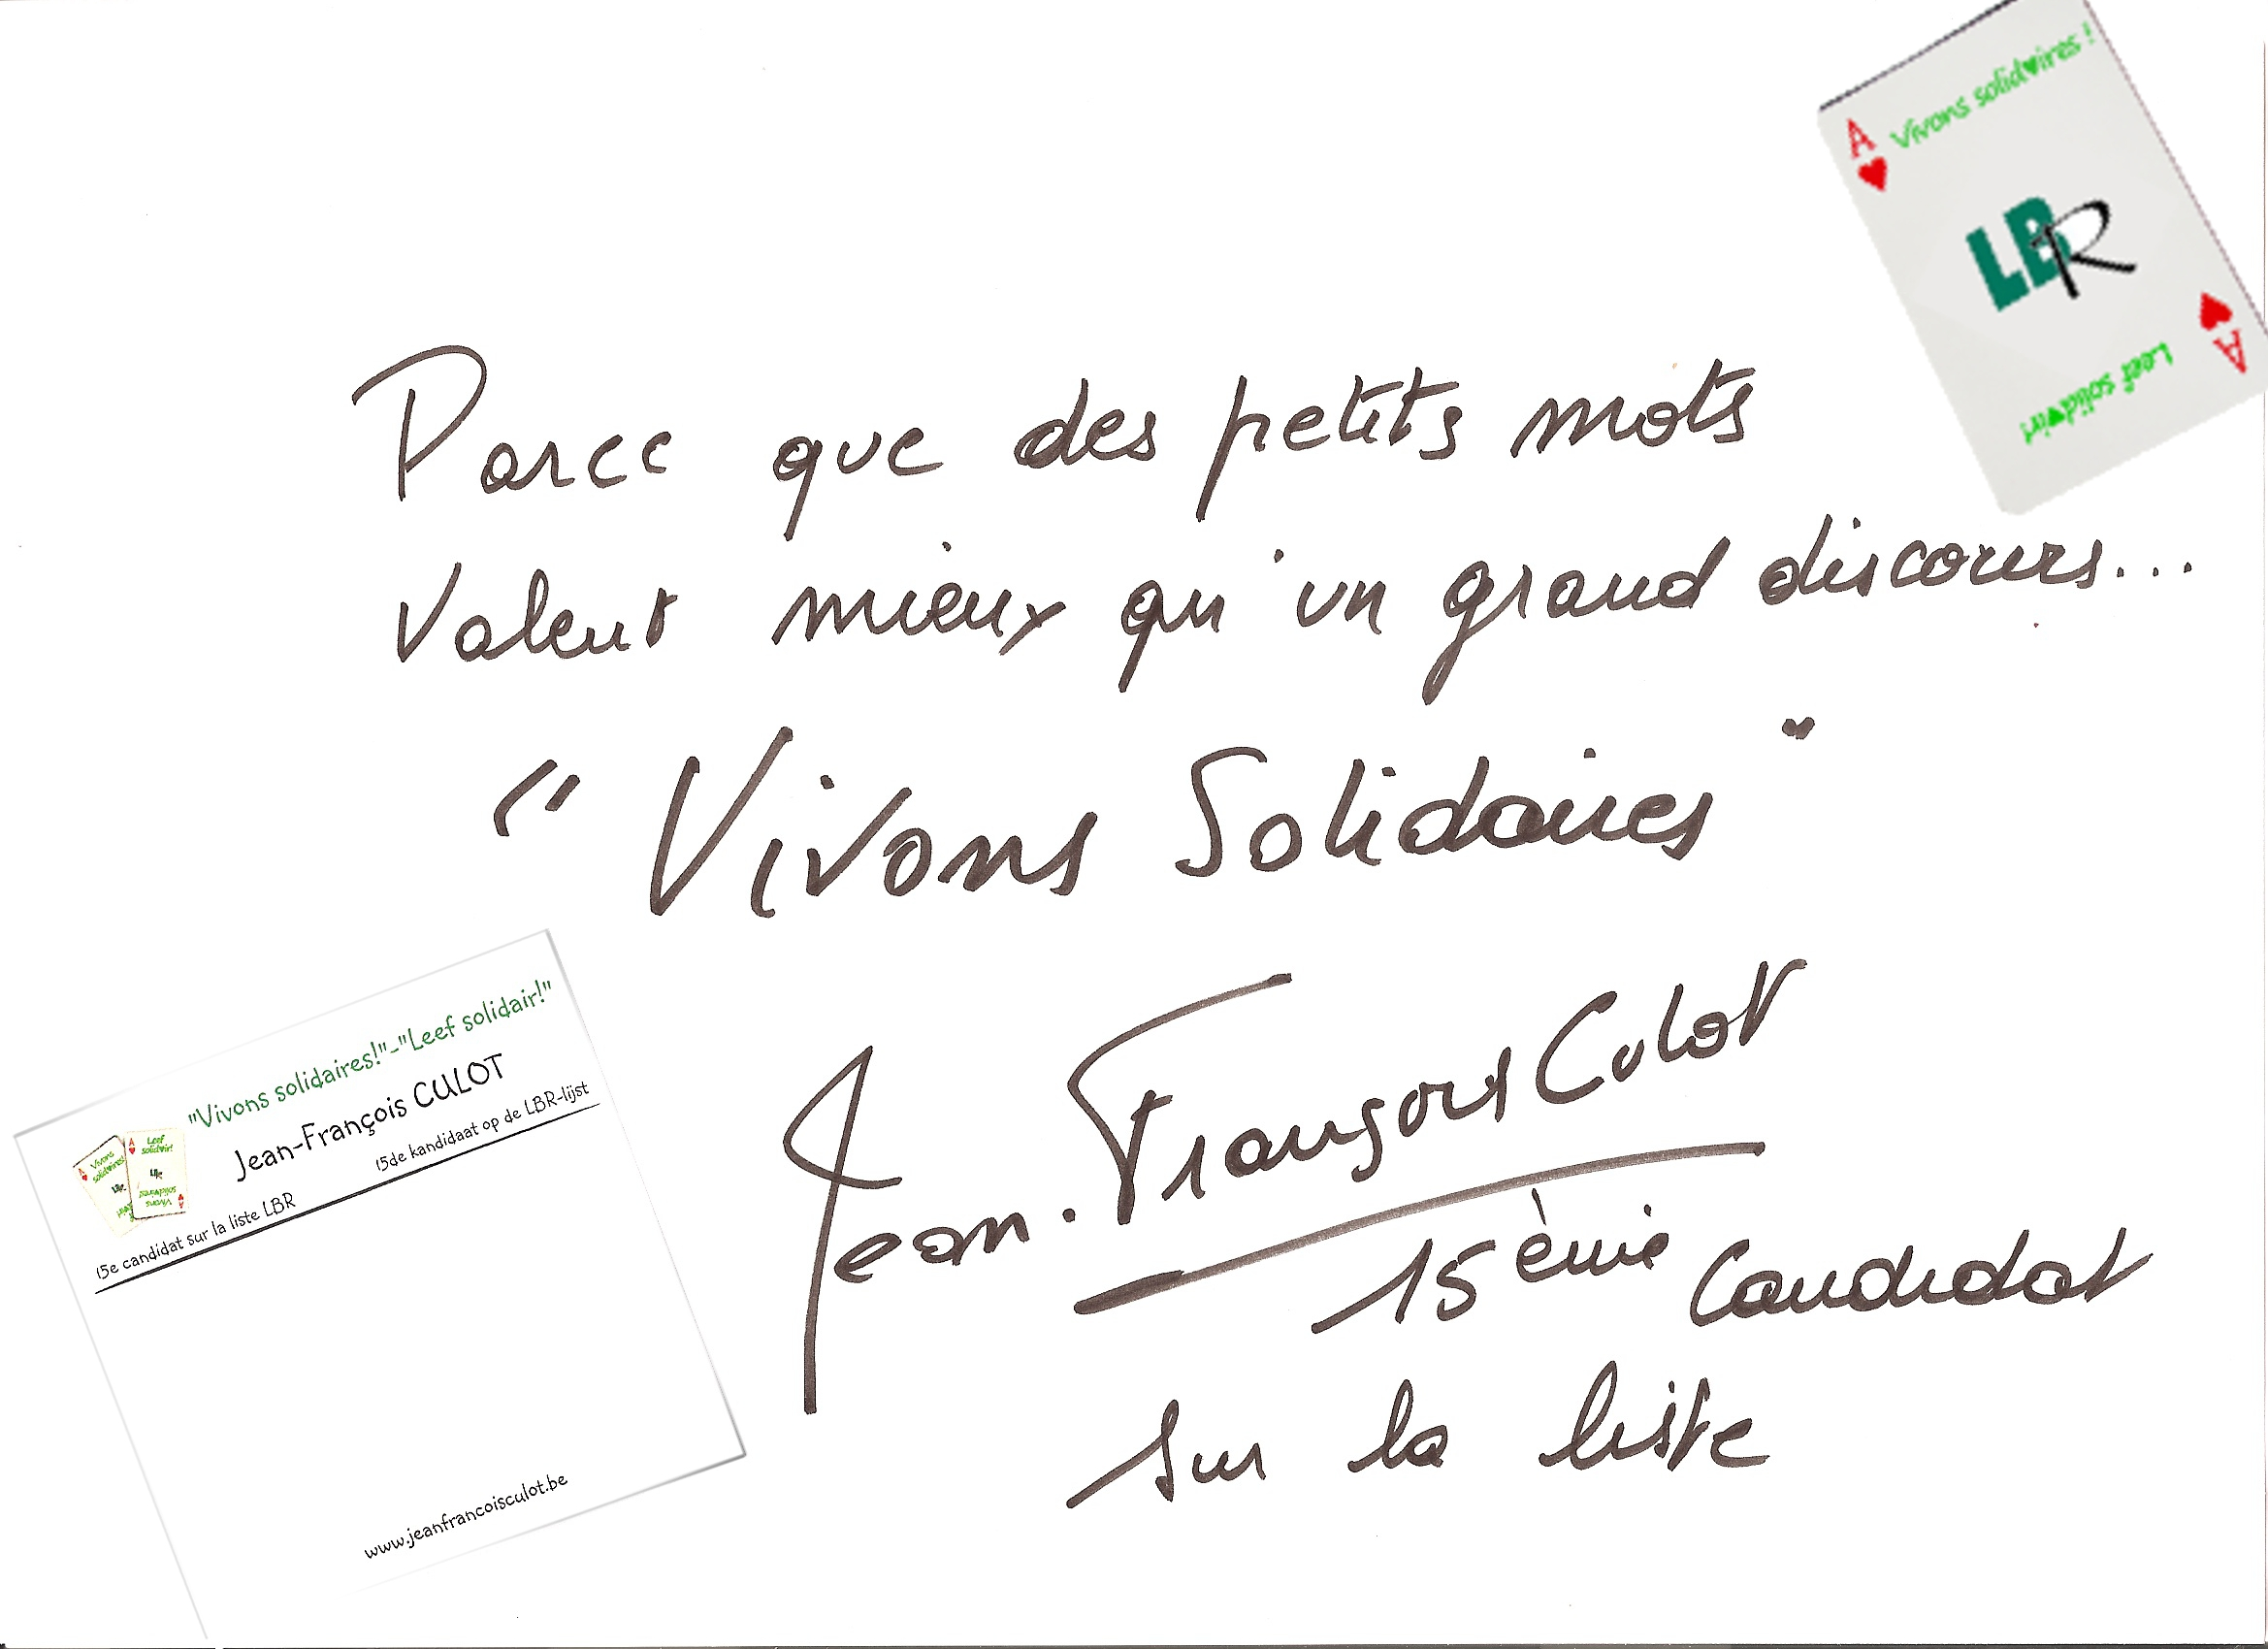 Vivons Solidaires !